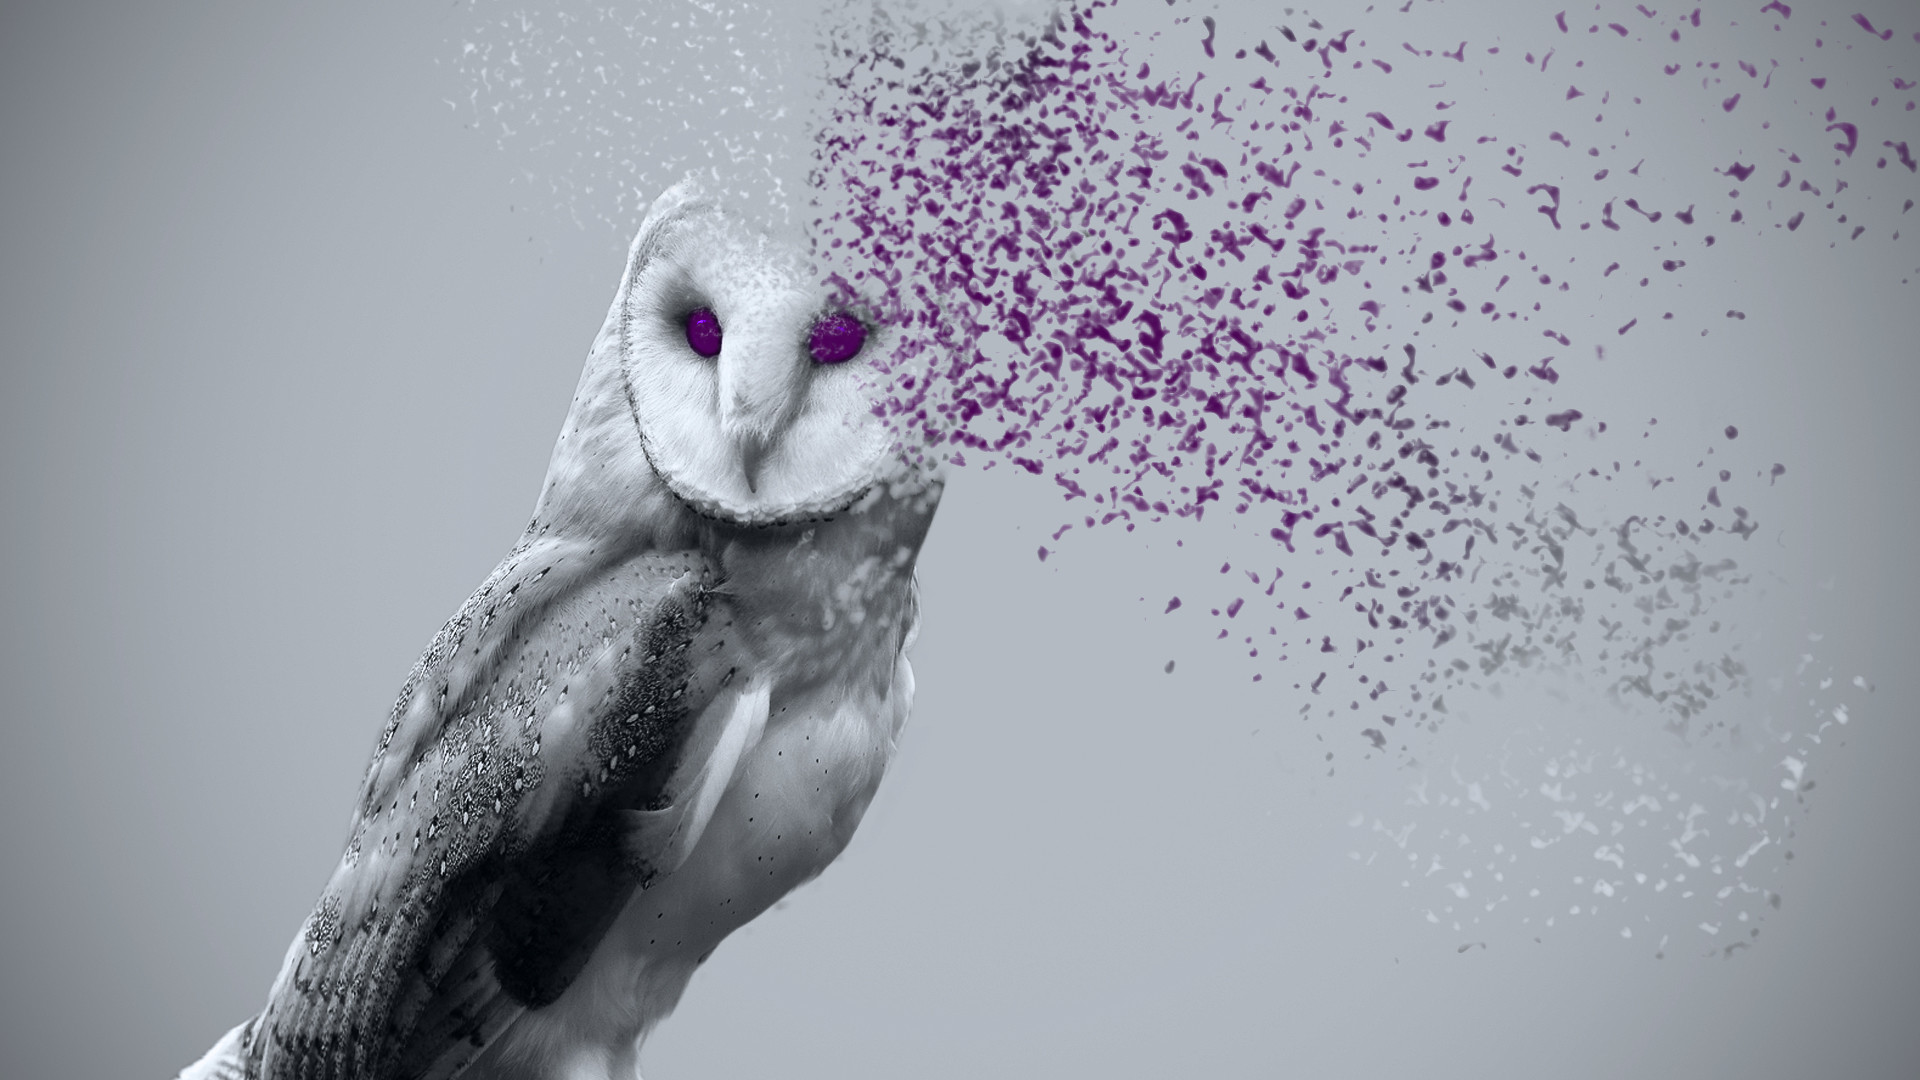 Res: 1920x1080, Page a HD Wallpaper Image Background, Design Photos wallkies Cute owl  wallpaper Pinteres